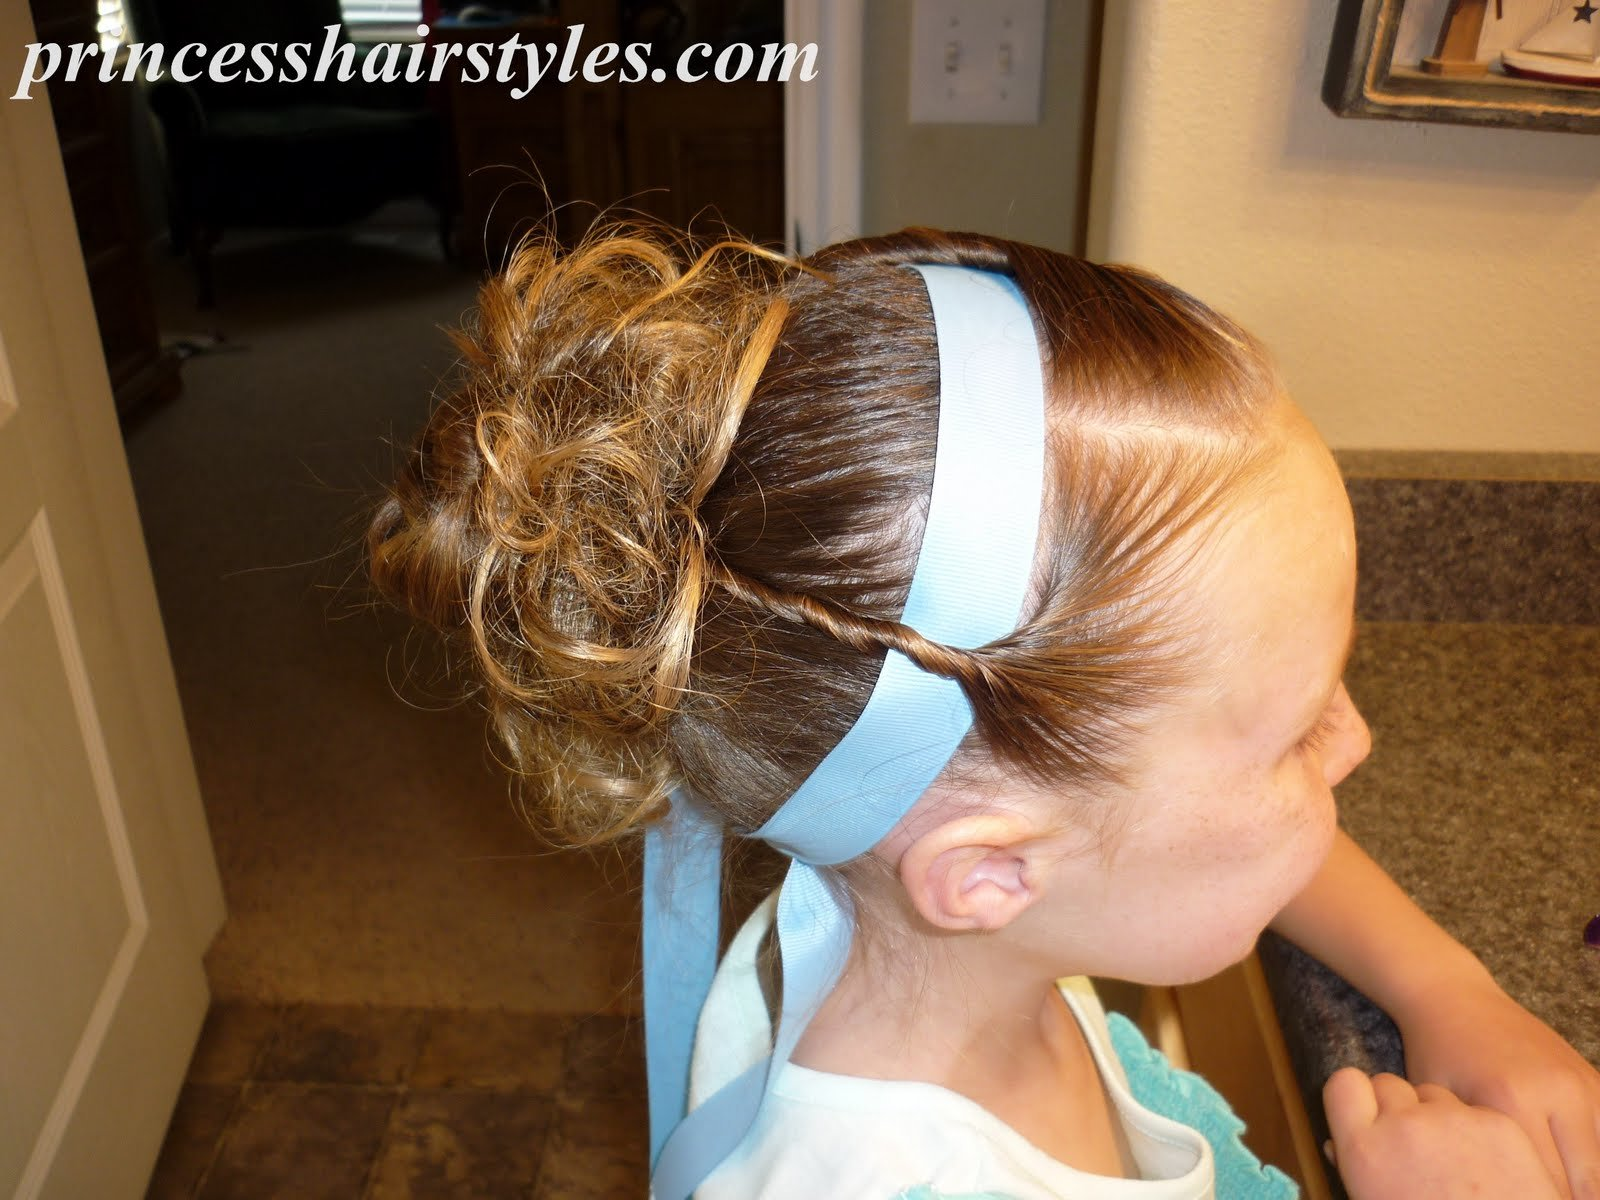 The Best Hairstyles For Dance Competition Recital Hairstyles For Girls Princess Hairstyles Pictures